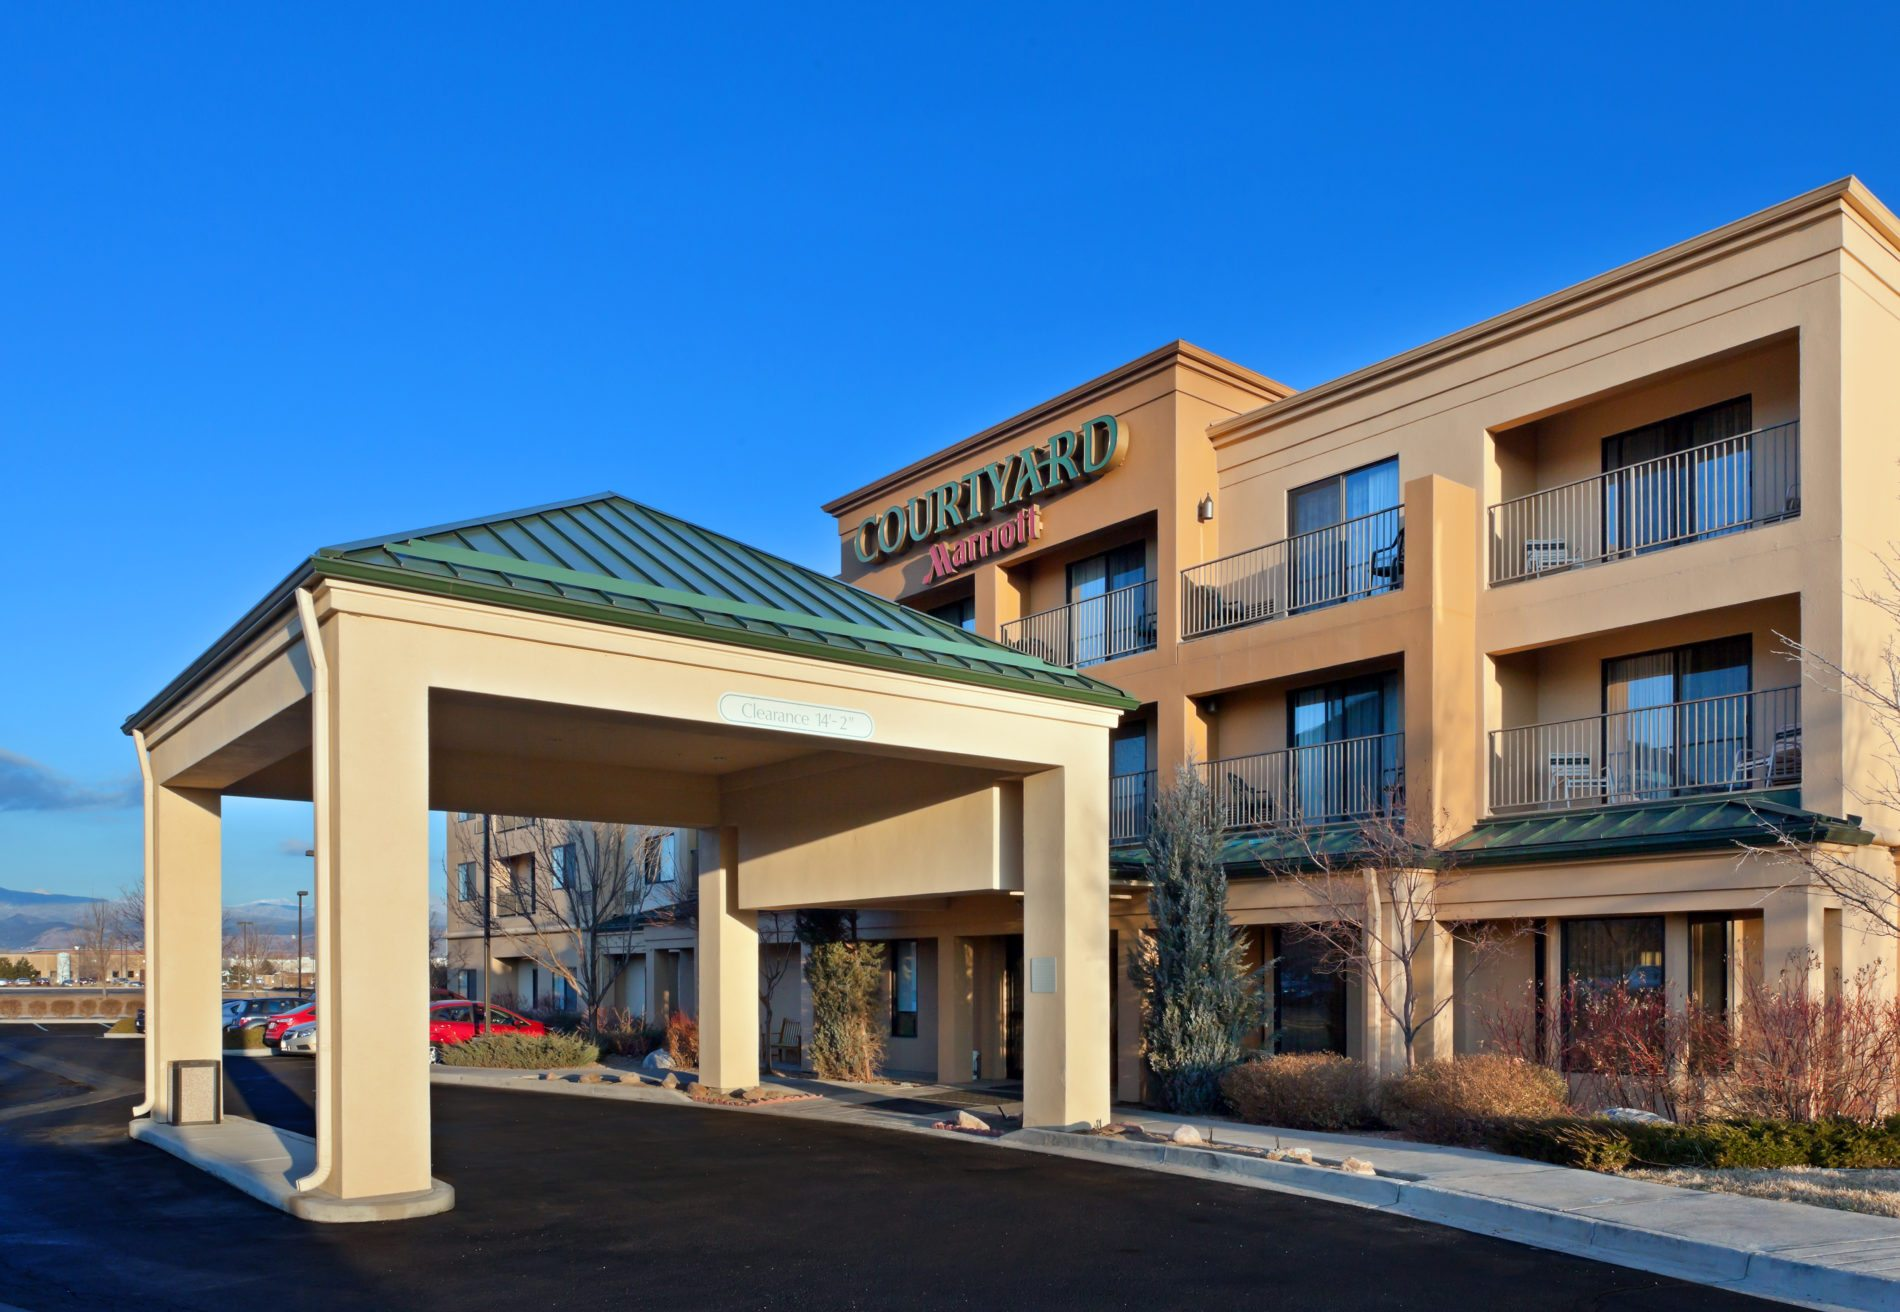 Boulder Eye Care & Surgery Center Doctors Courtyard Exterior Pic - Hotels & Lodging